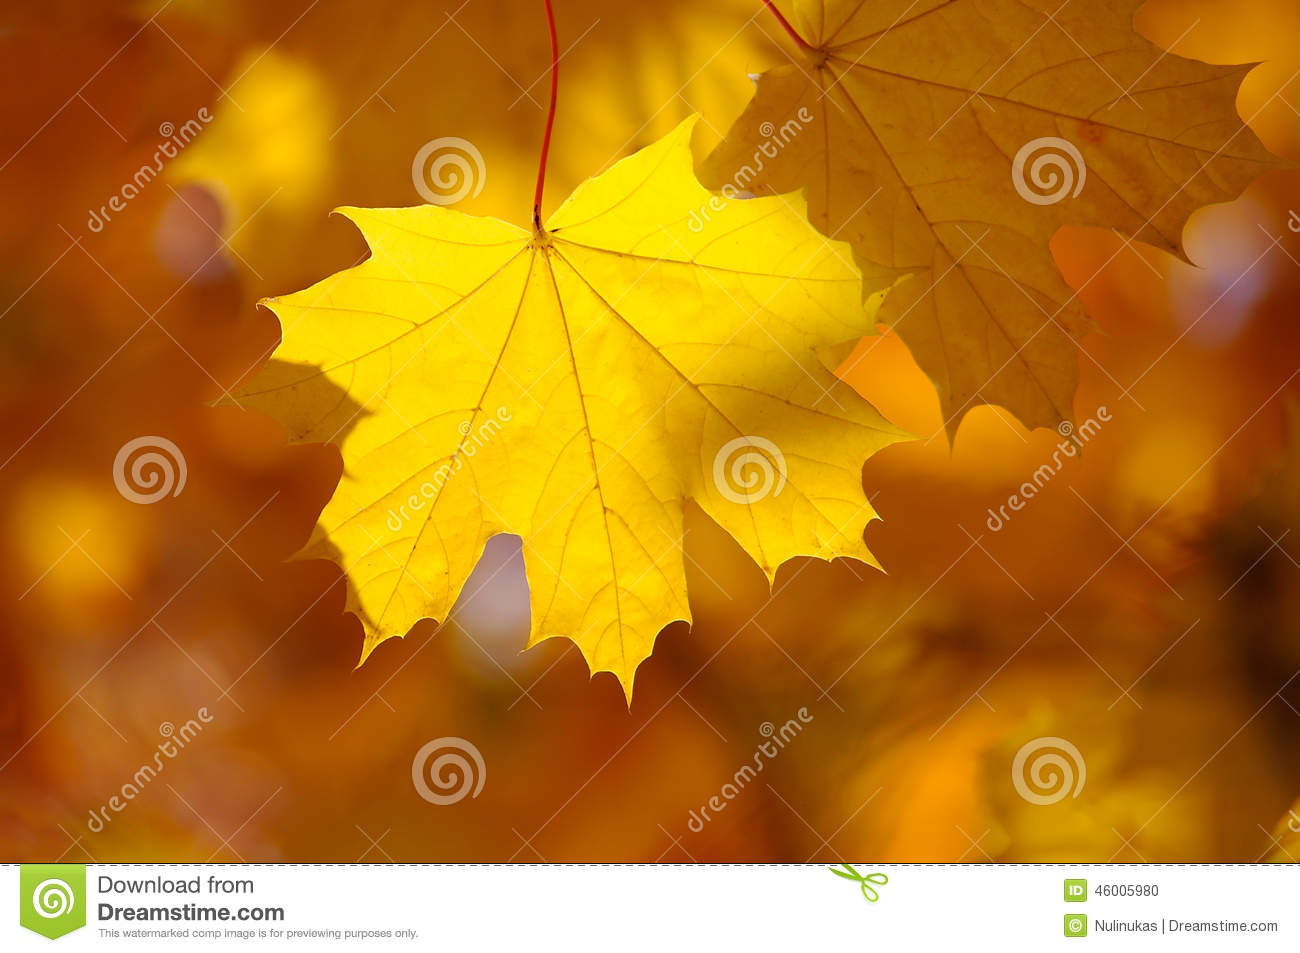 Abstract autumn background, old orange maple leaves,